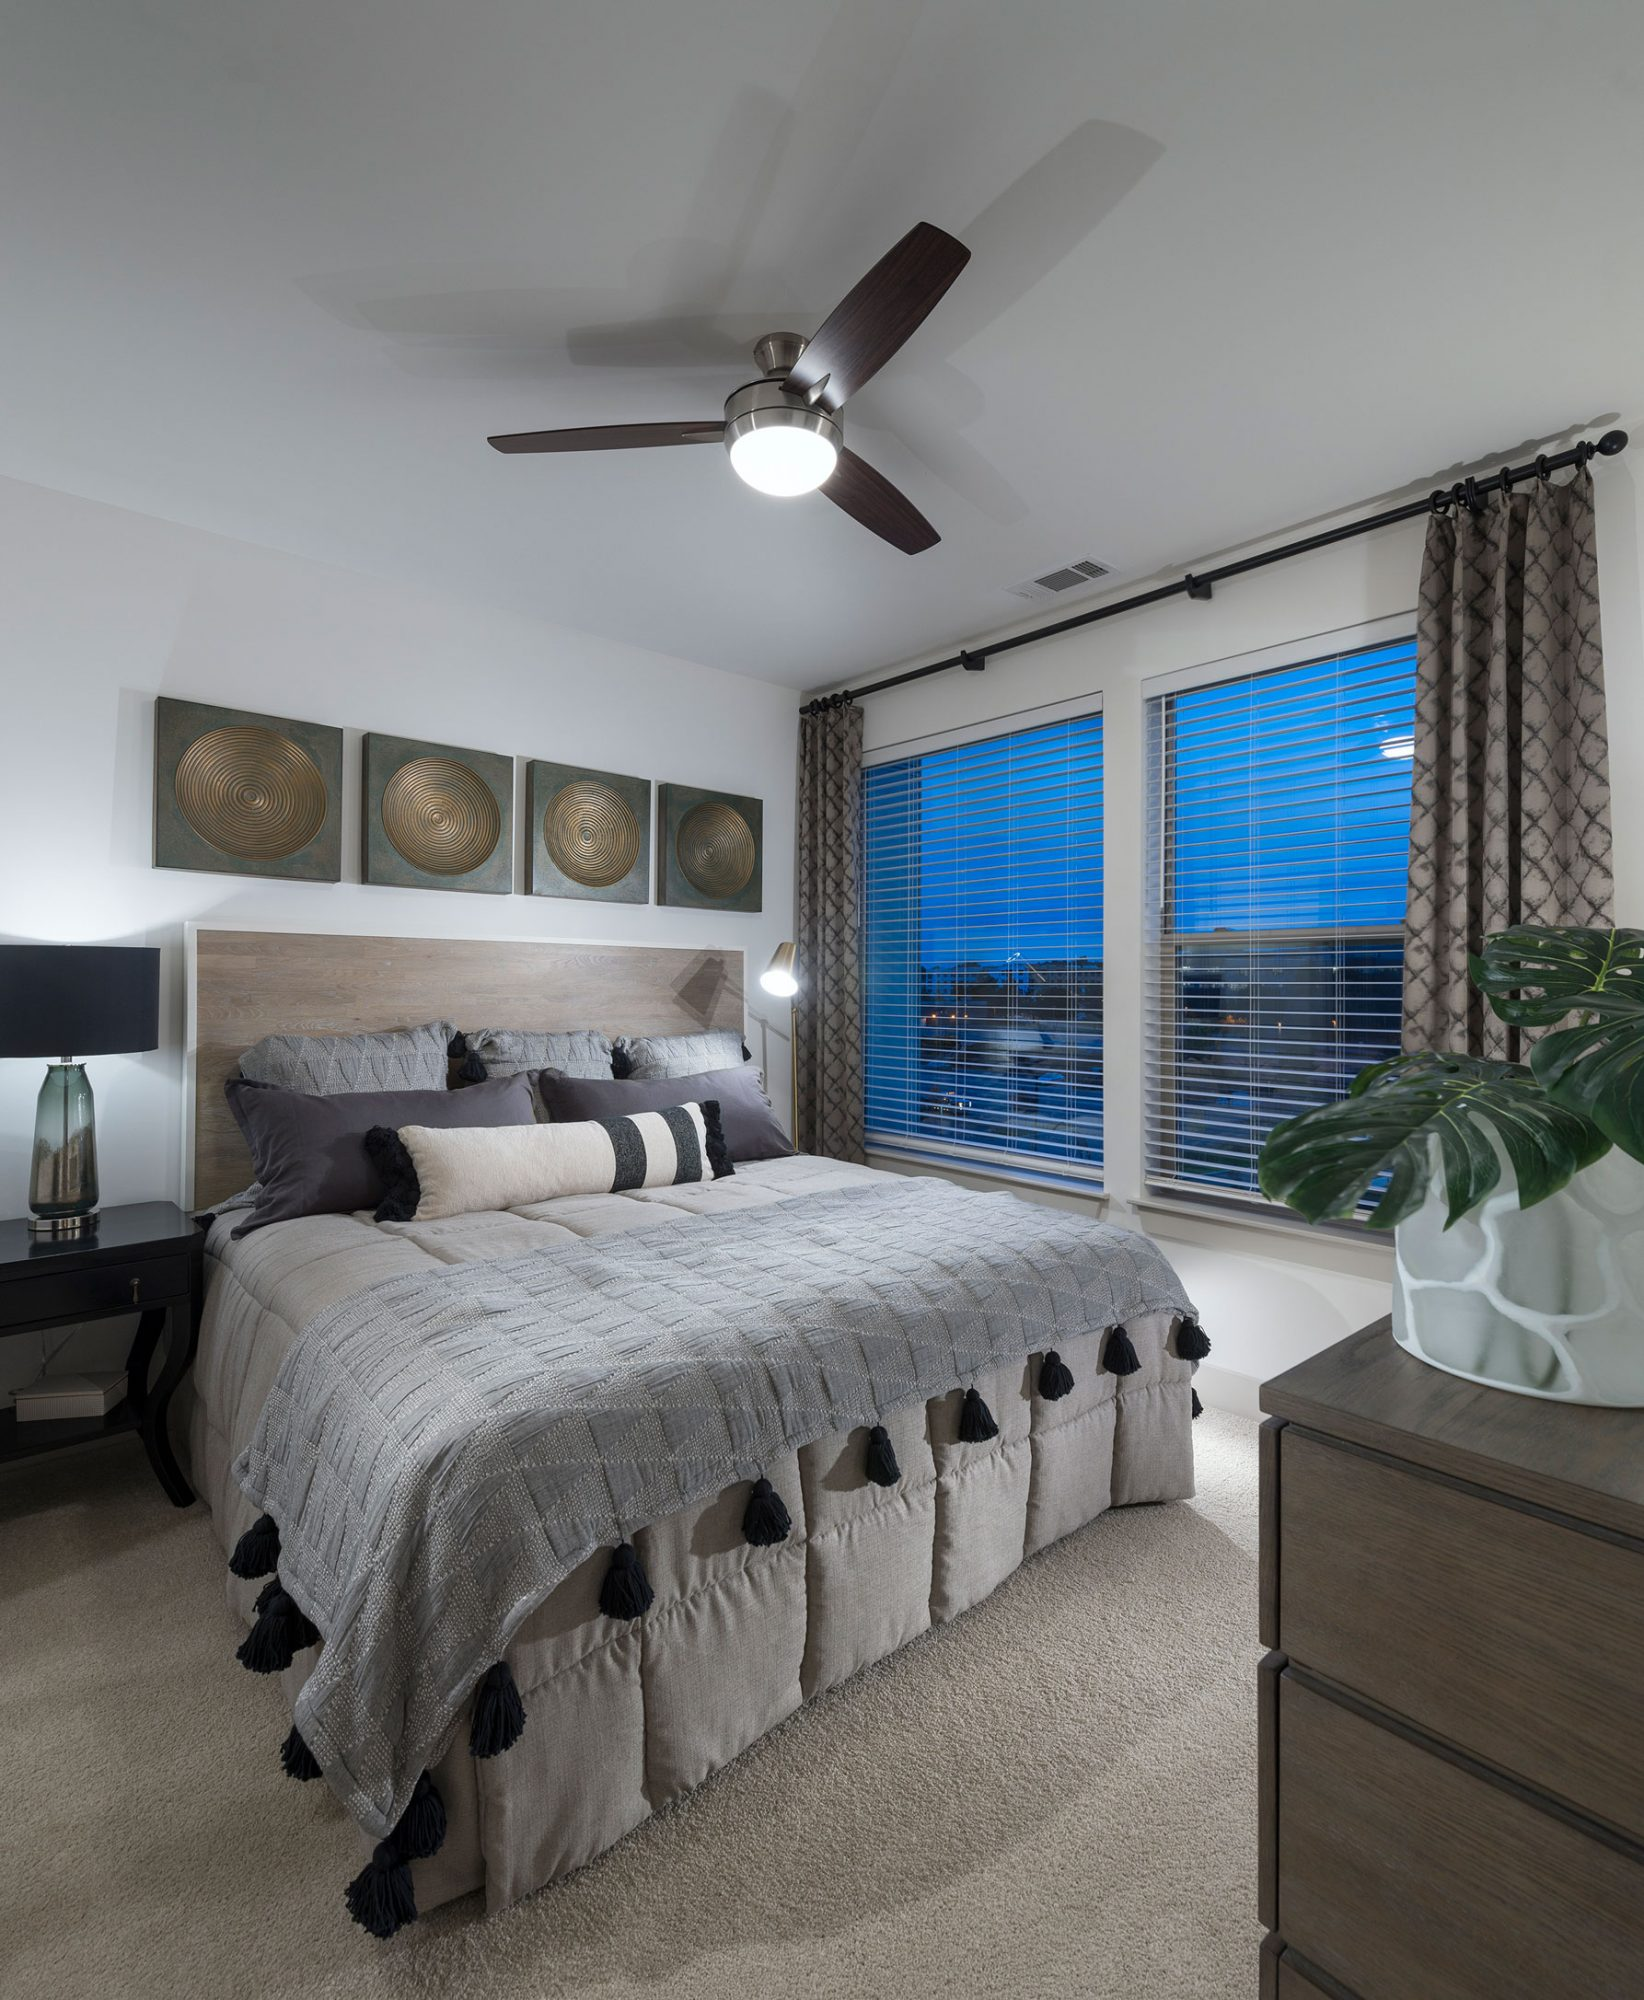 Bedroom with ceiling fan, two large windows, plush carpet, dresser, king sized bed and nightstands